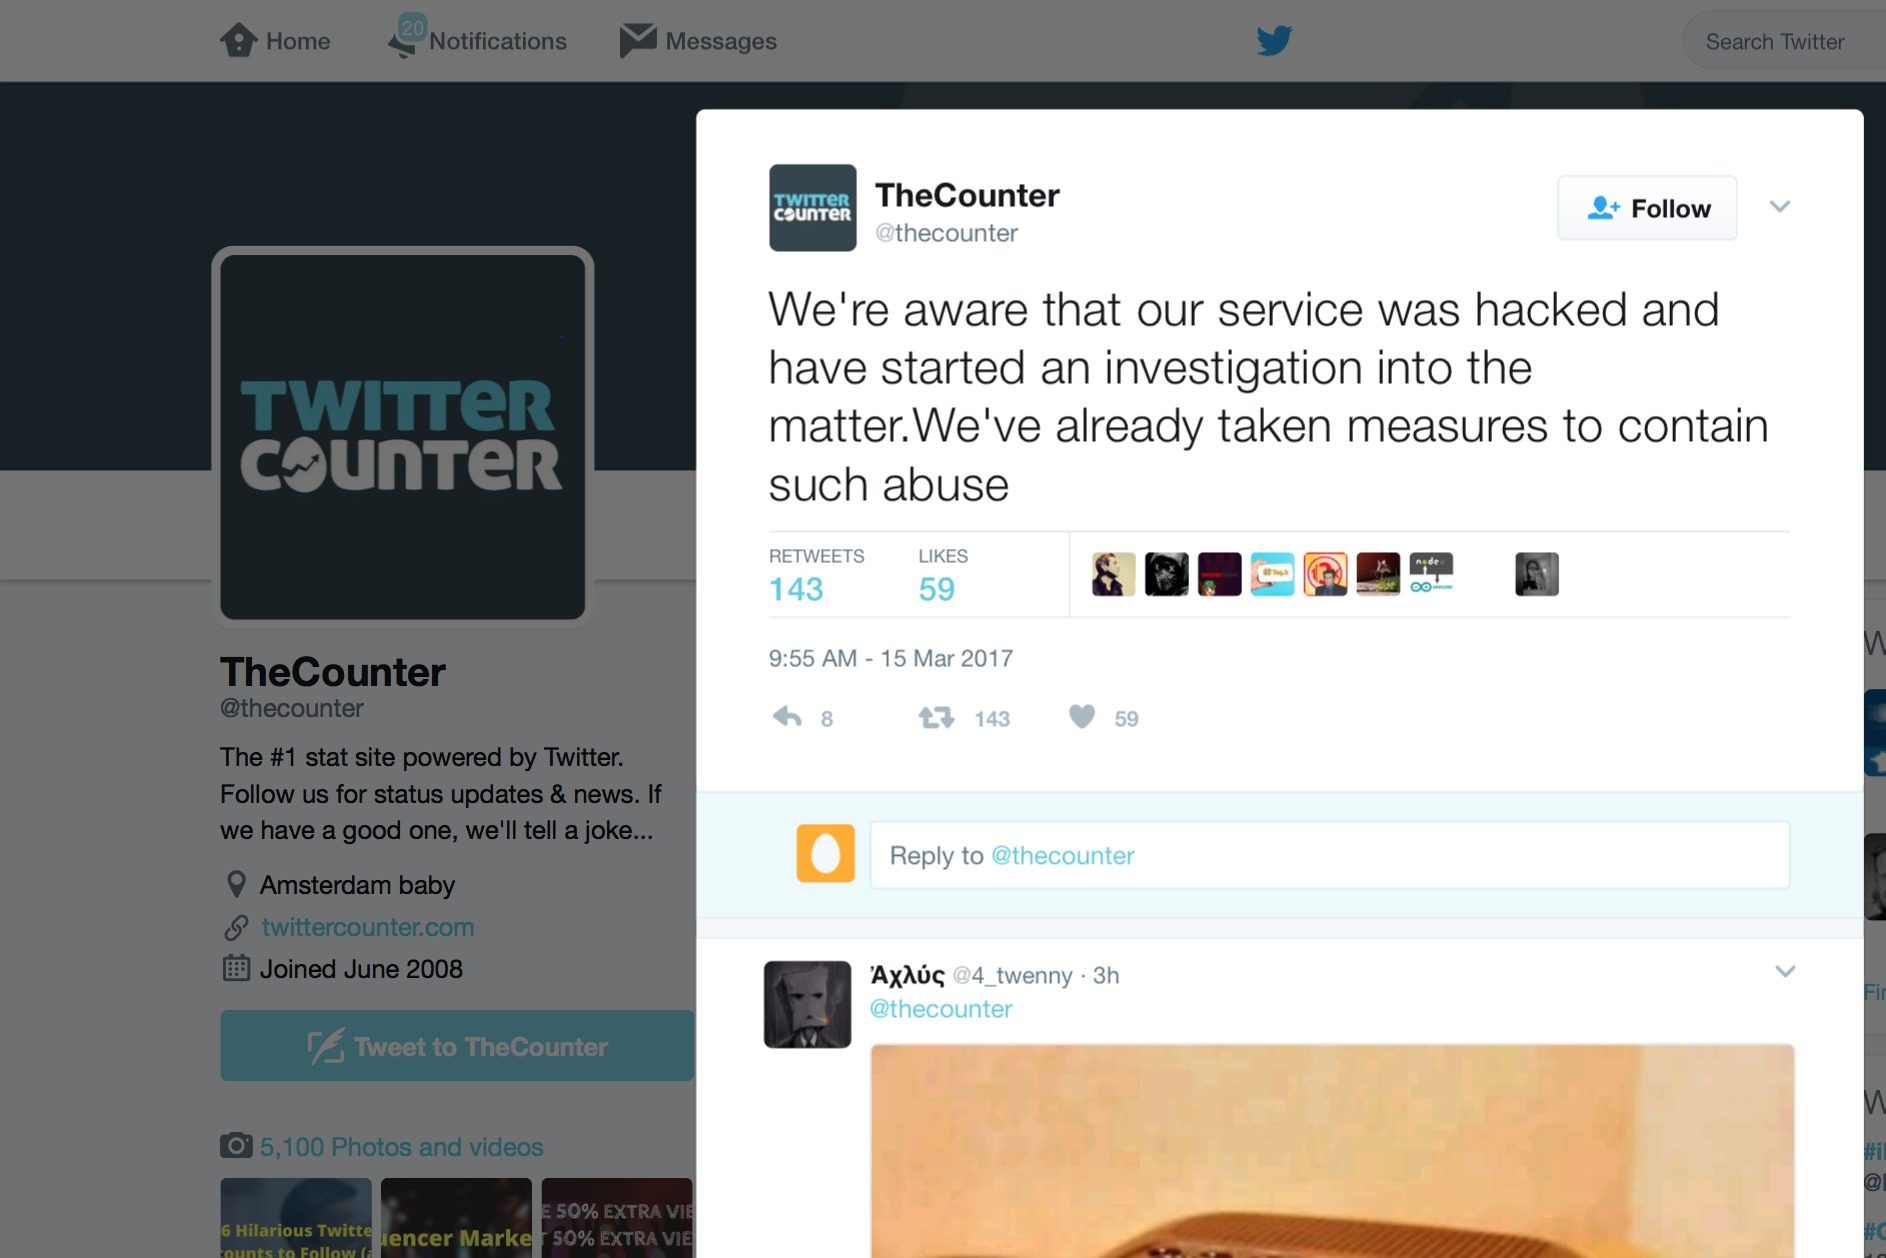 Twitter Counter hacked: Hundreds of high-profile Twitter accounts hijacked